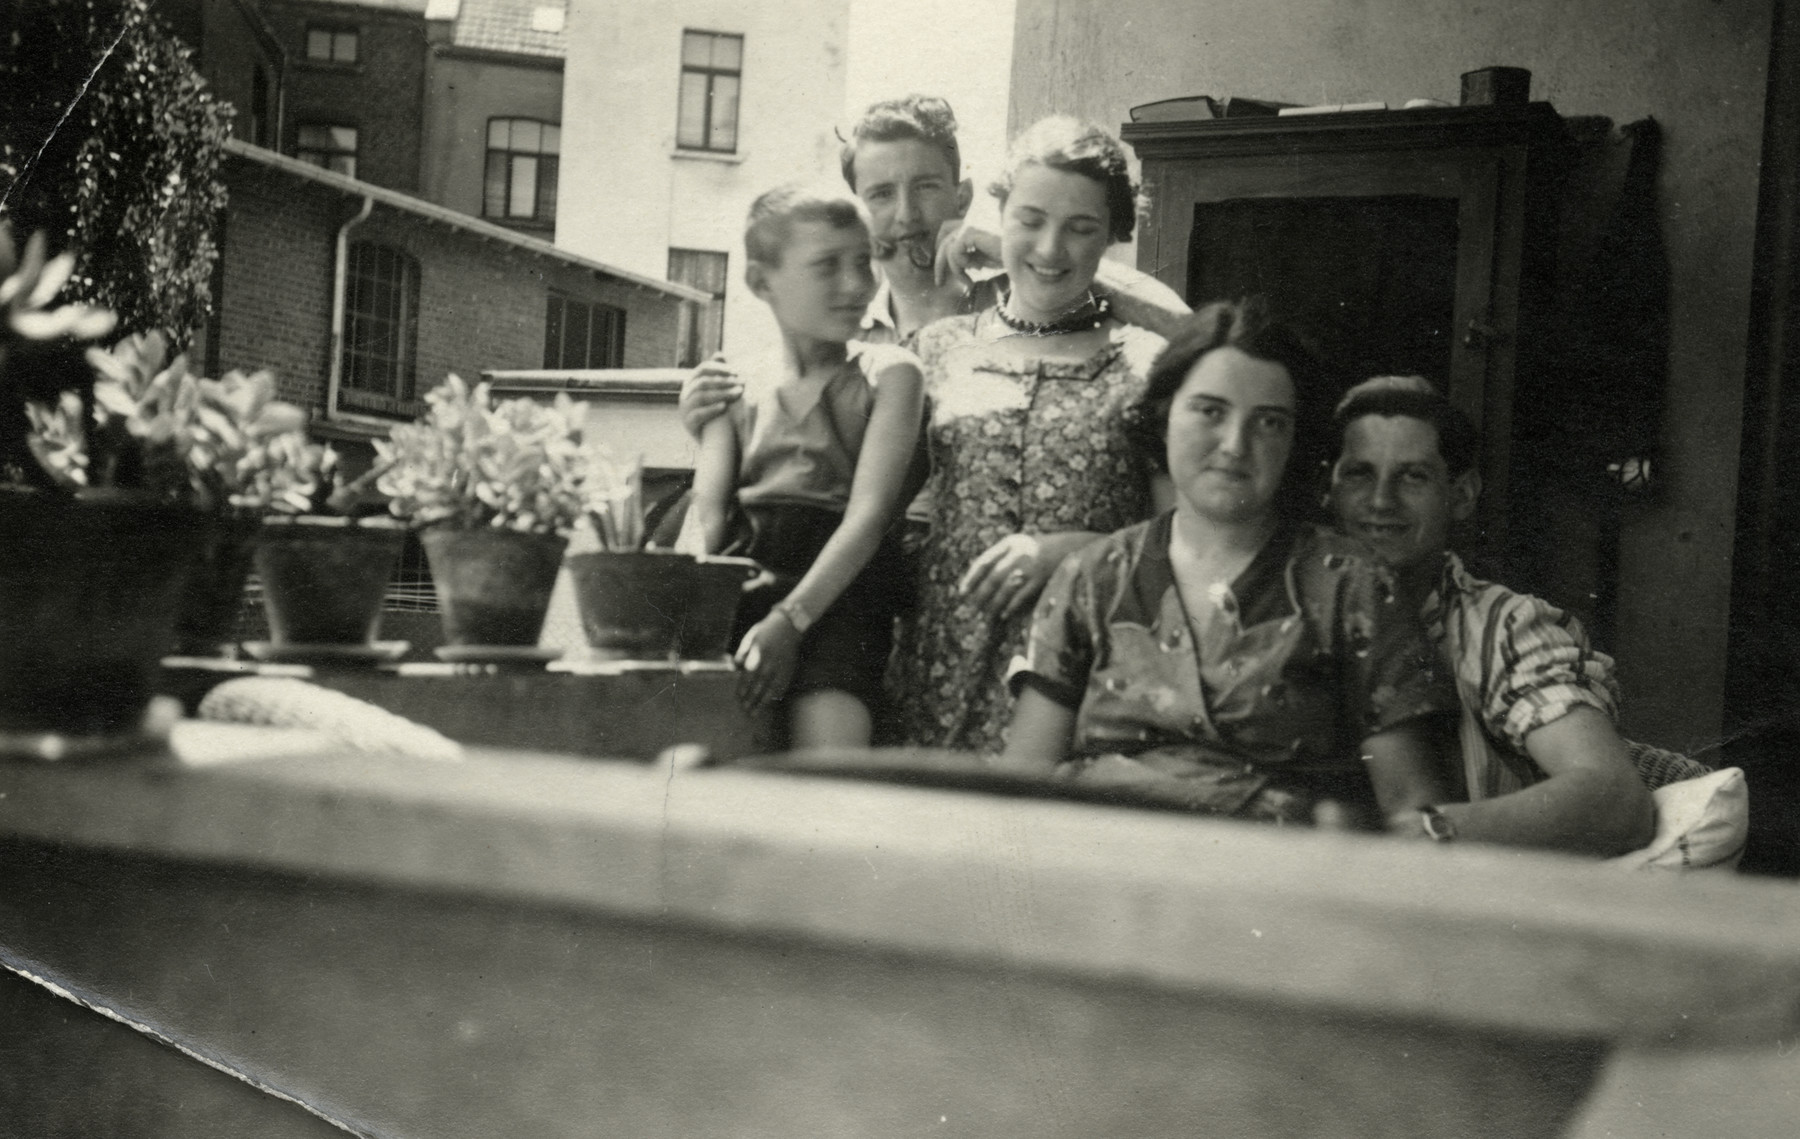 The Meyer children pose on the balcony of their home.  On the far left is Guss Meyer with his sister Erika and brother Herbert. On the right is Gus'older sister Theresa and her husband Carl.